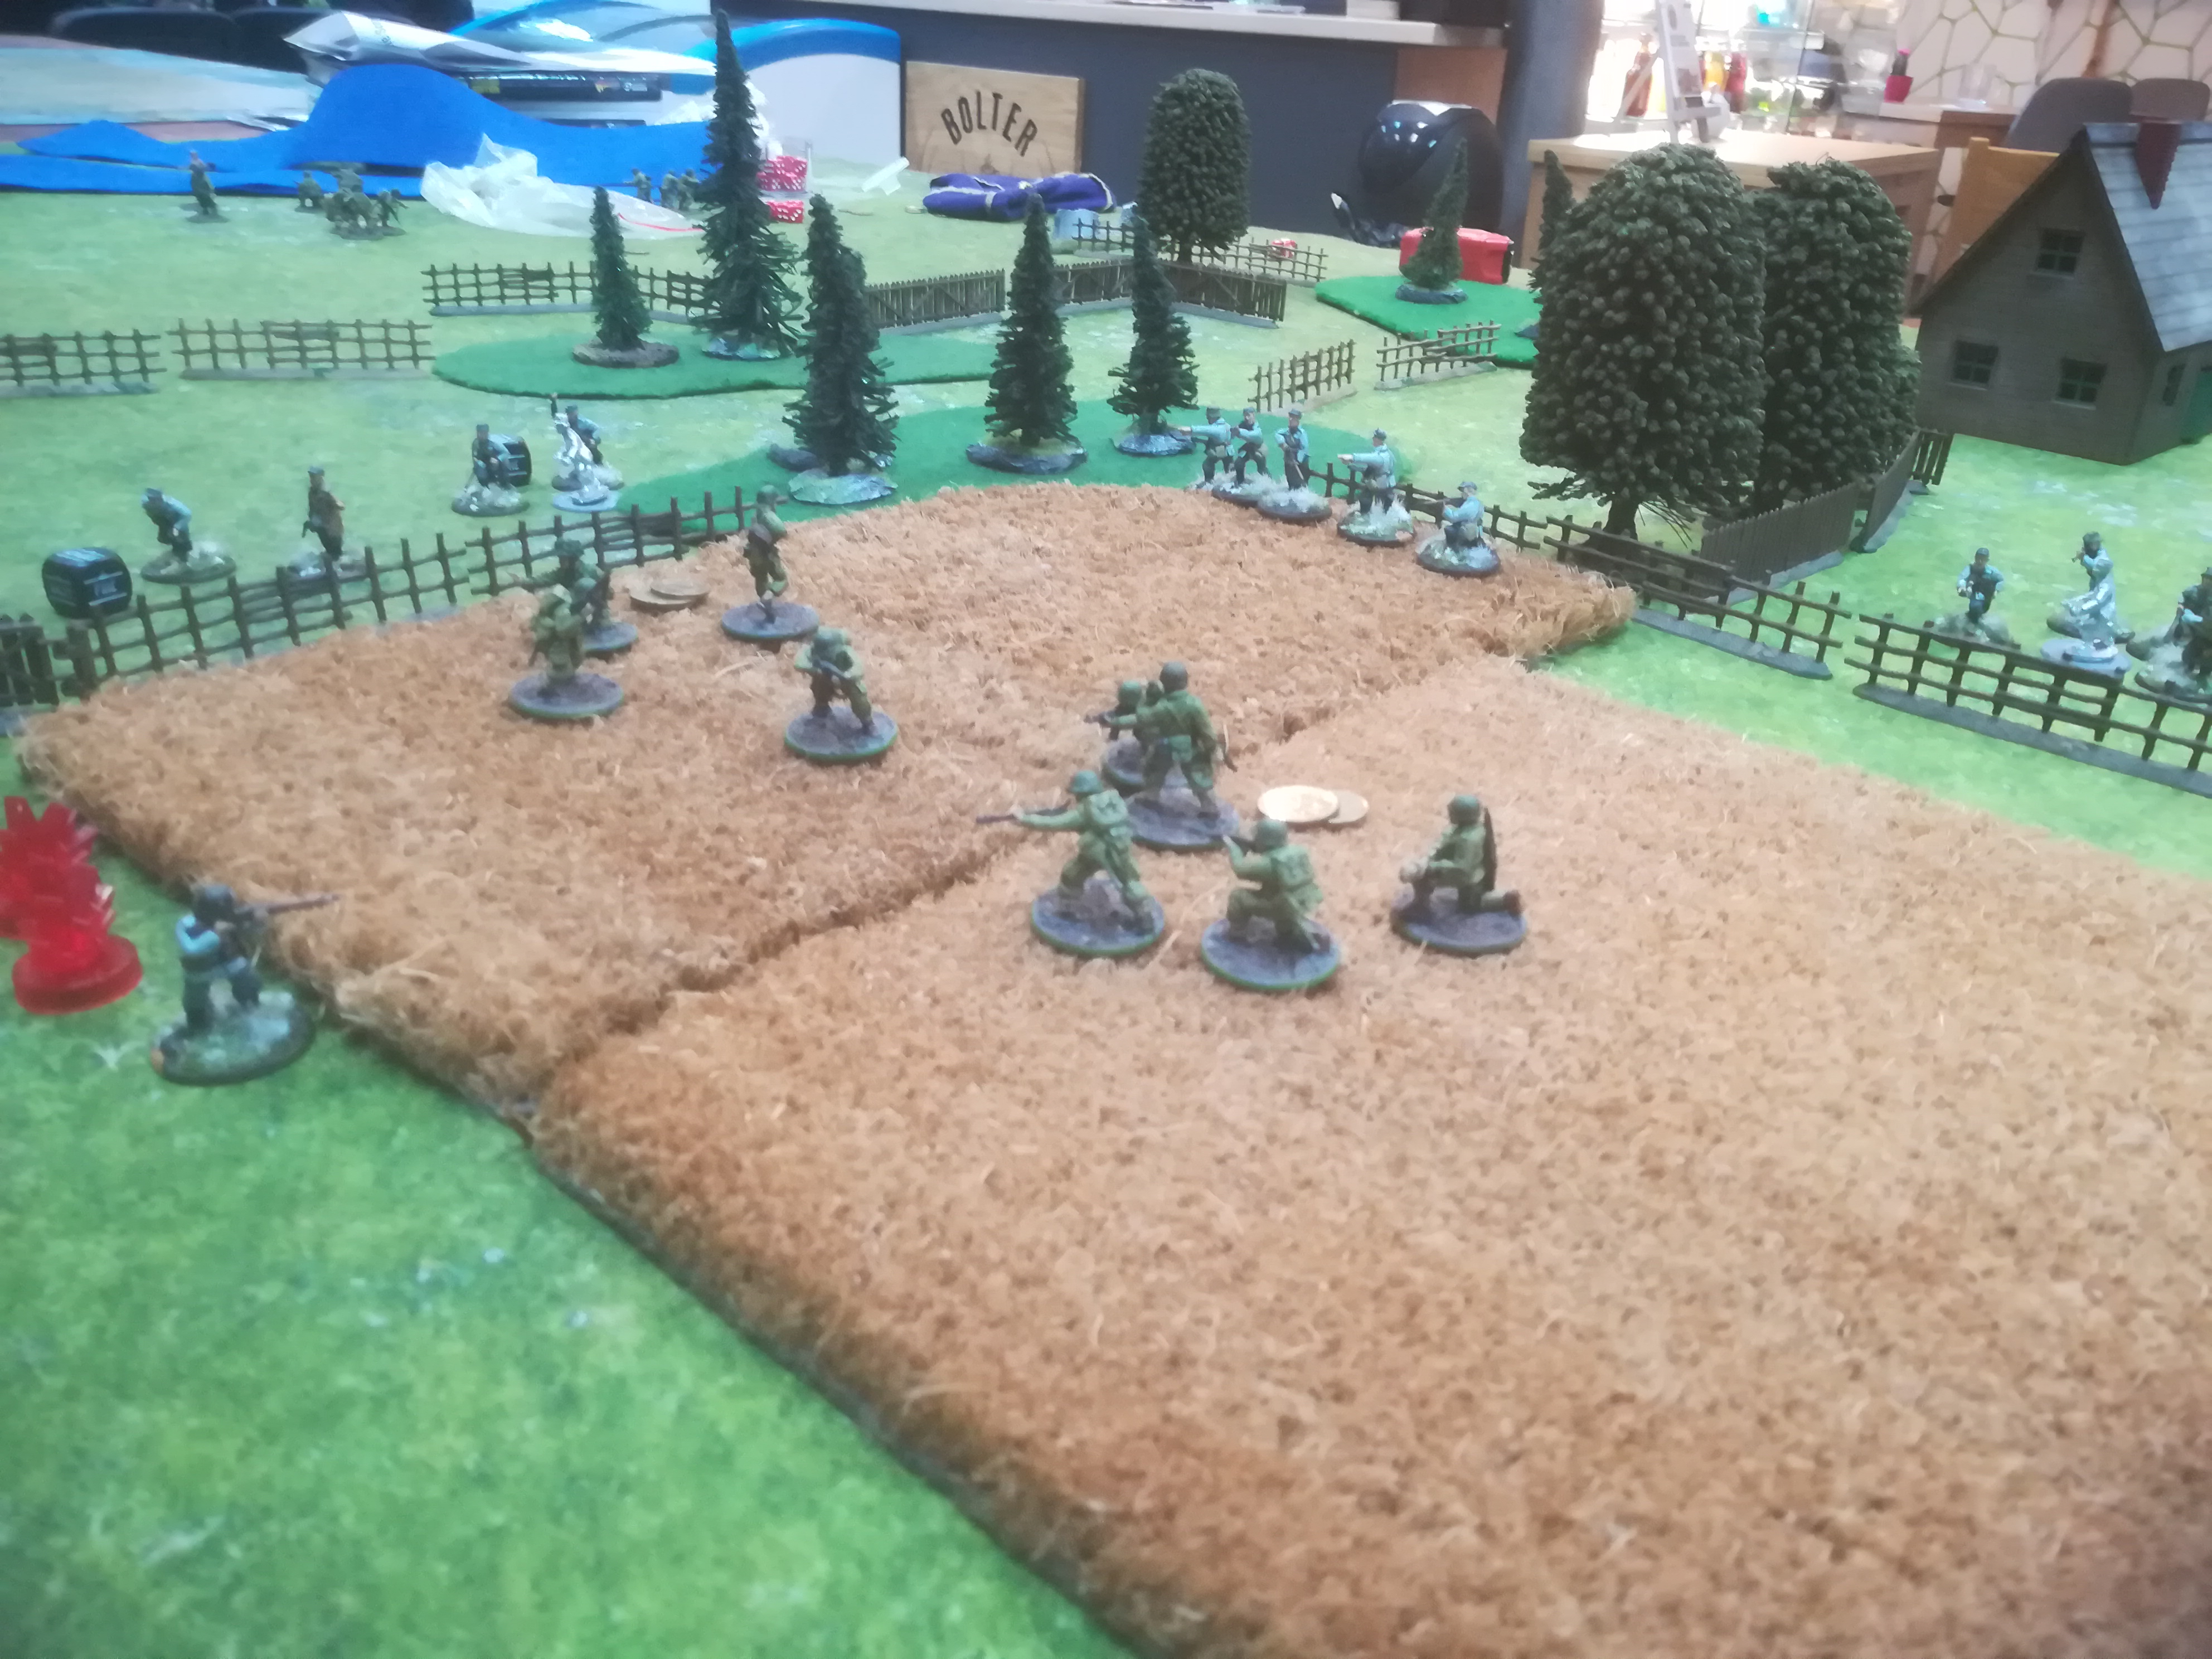 White Fire Batalion versus Simo Hayha in a fierce infantry engagement